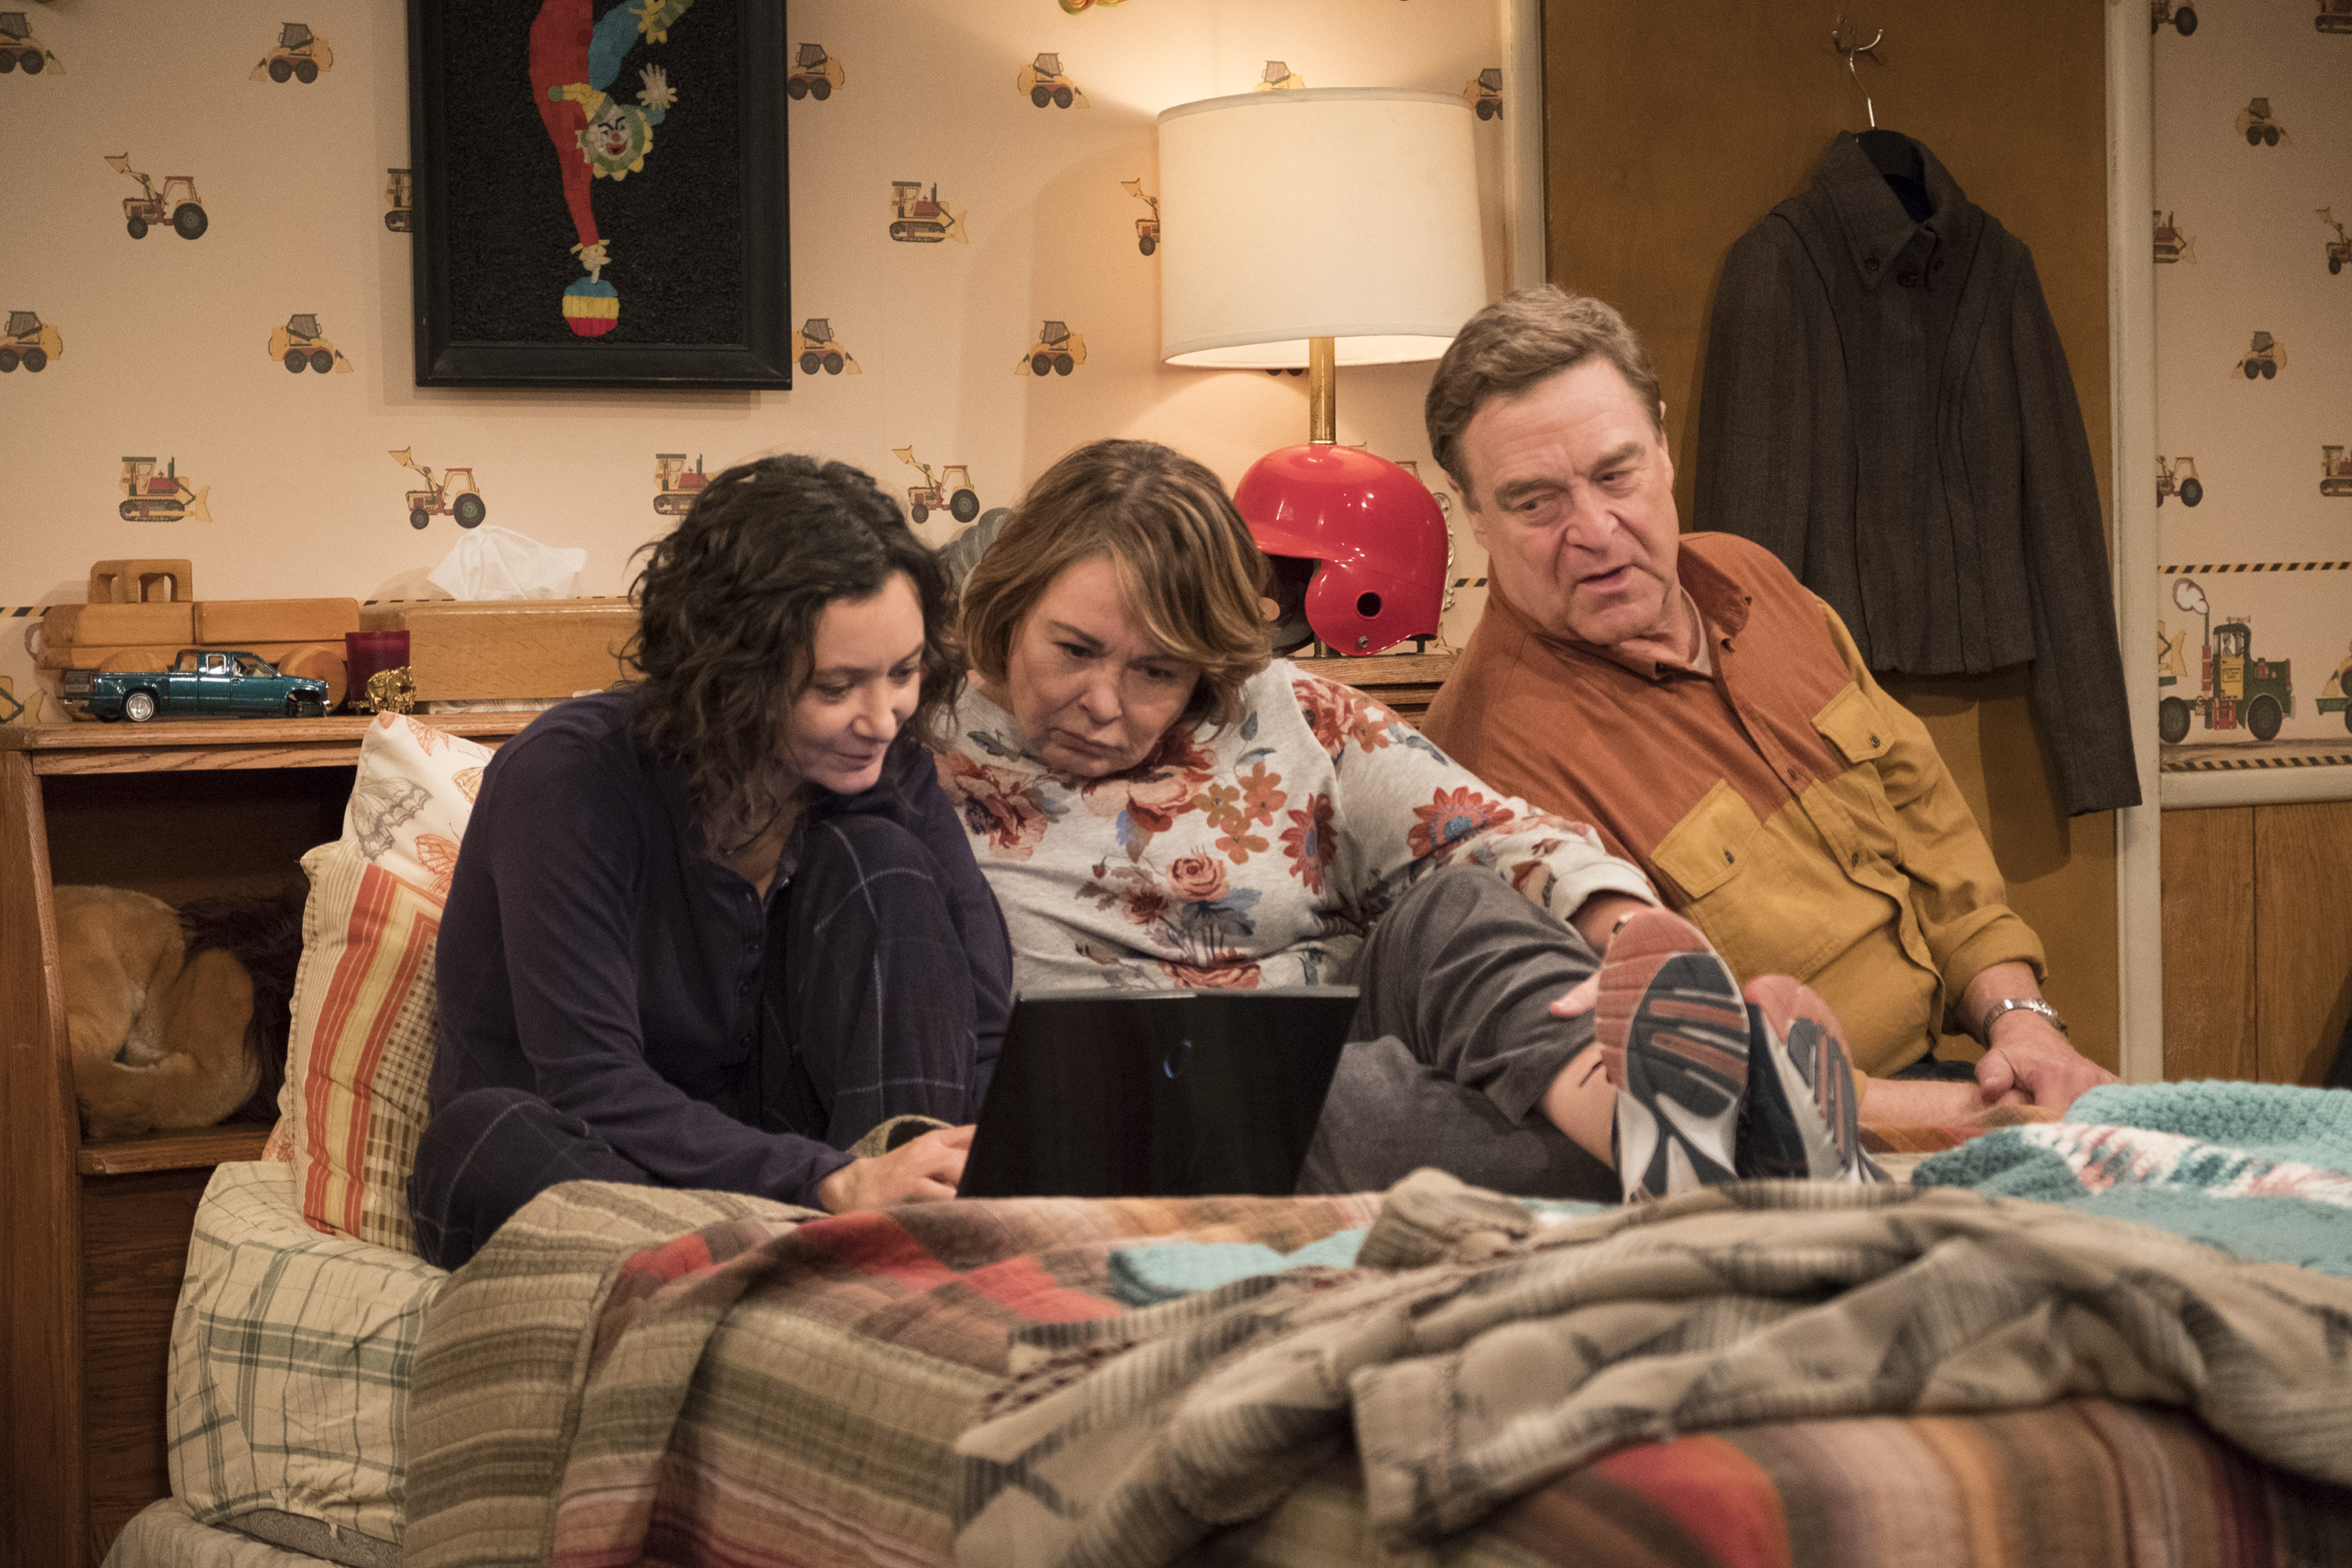 The <em>Roseanne</em> spinoff officially has a premiere date